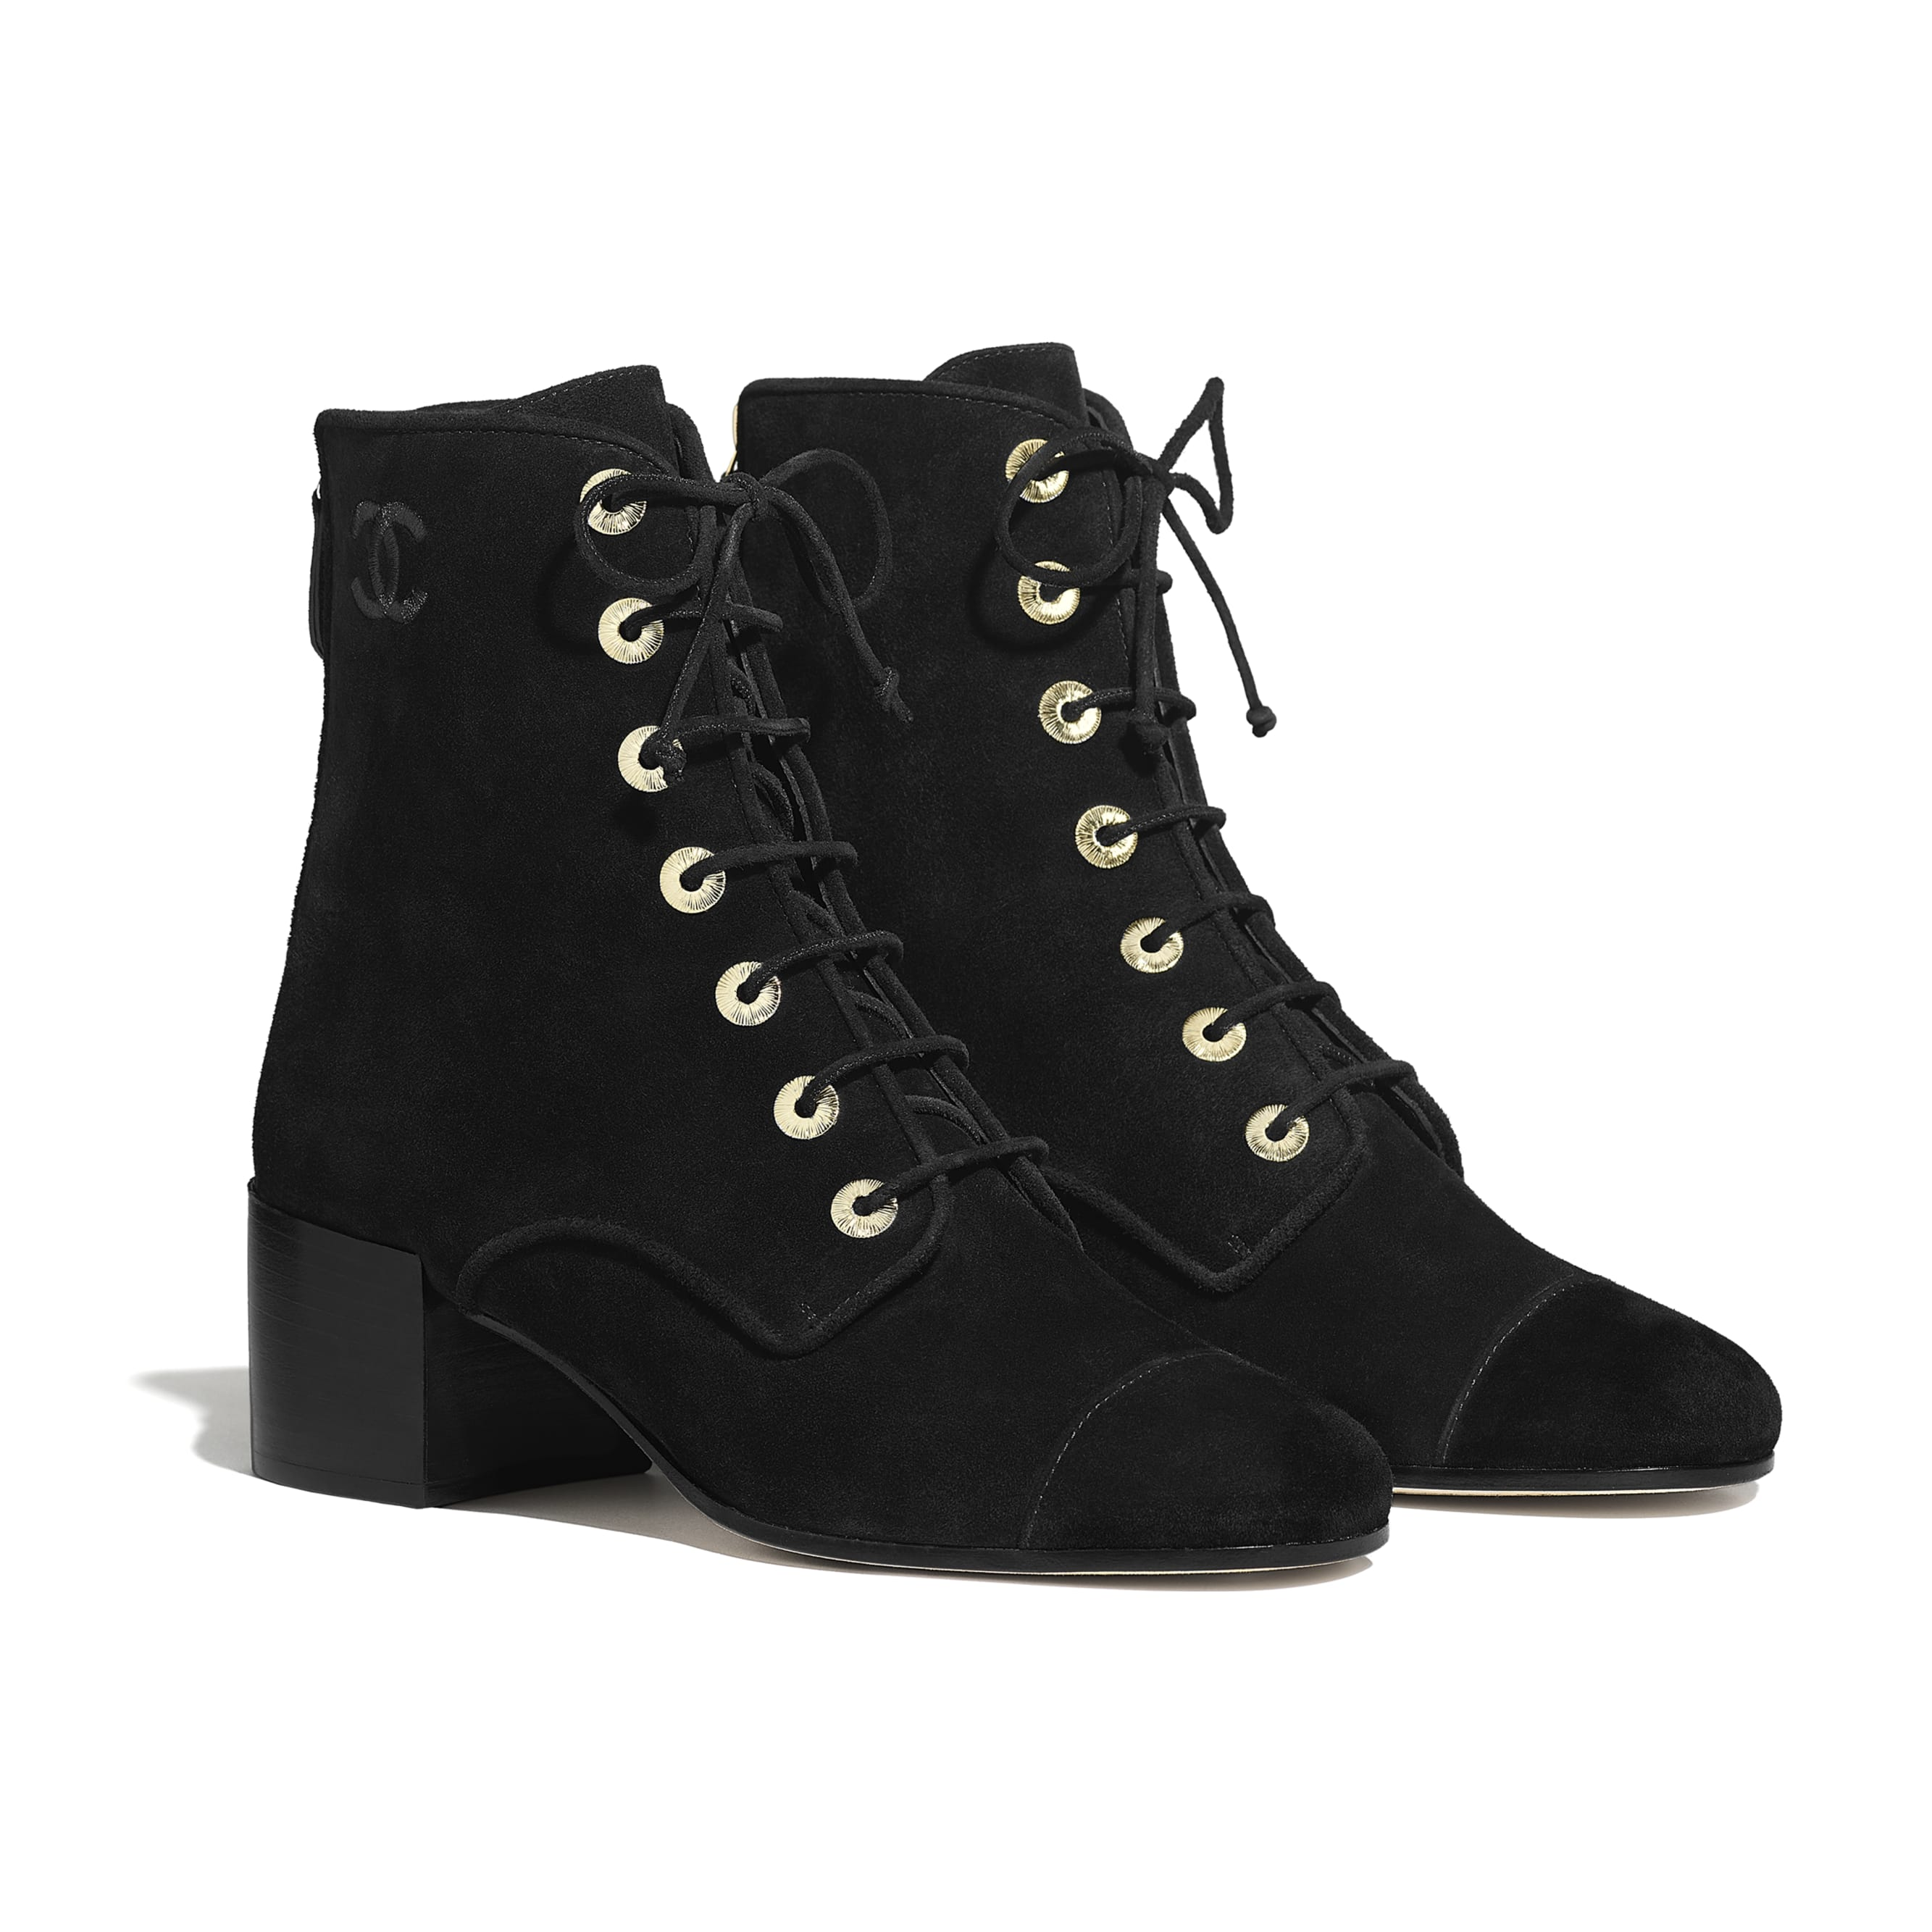 Ankle Boots - Black - Suede Calfskin - Alternative view - see standard sized version